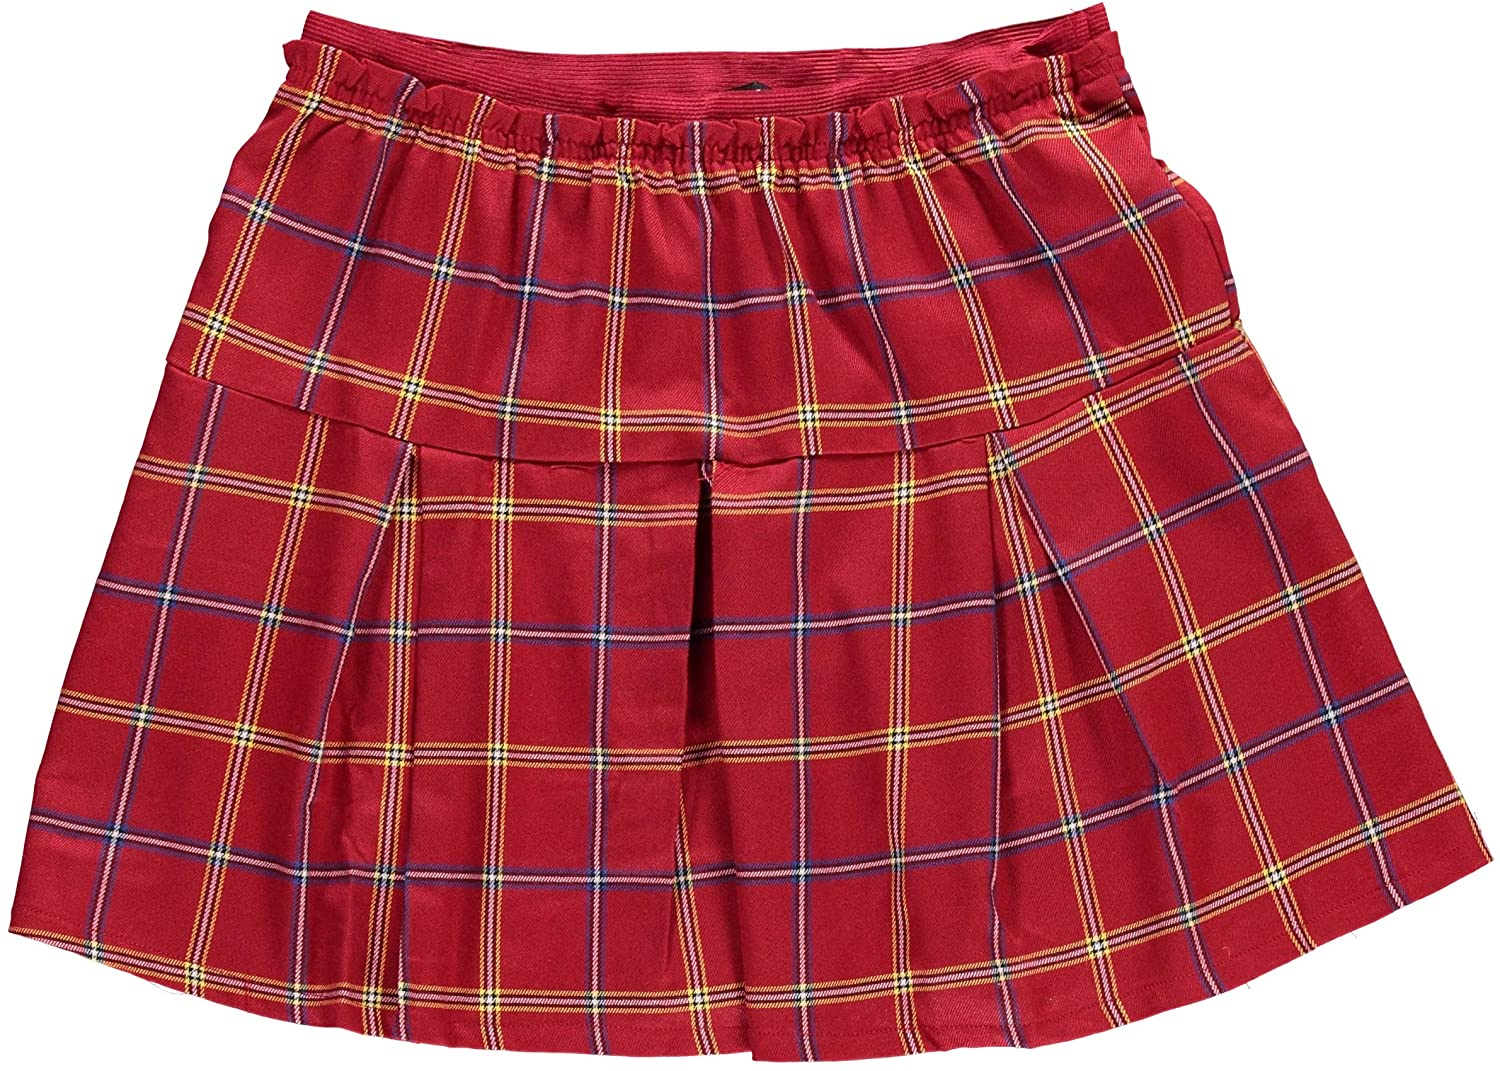 Big Girls Pleated Plaid Skirt in 3 Attractive Holiday Christmas Colors